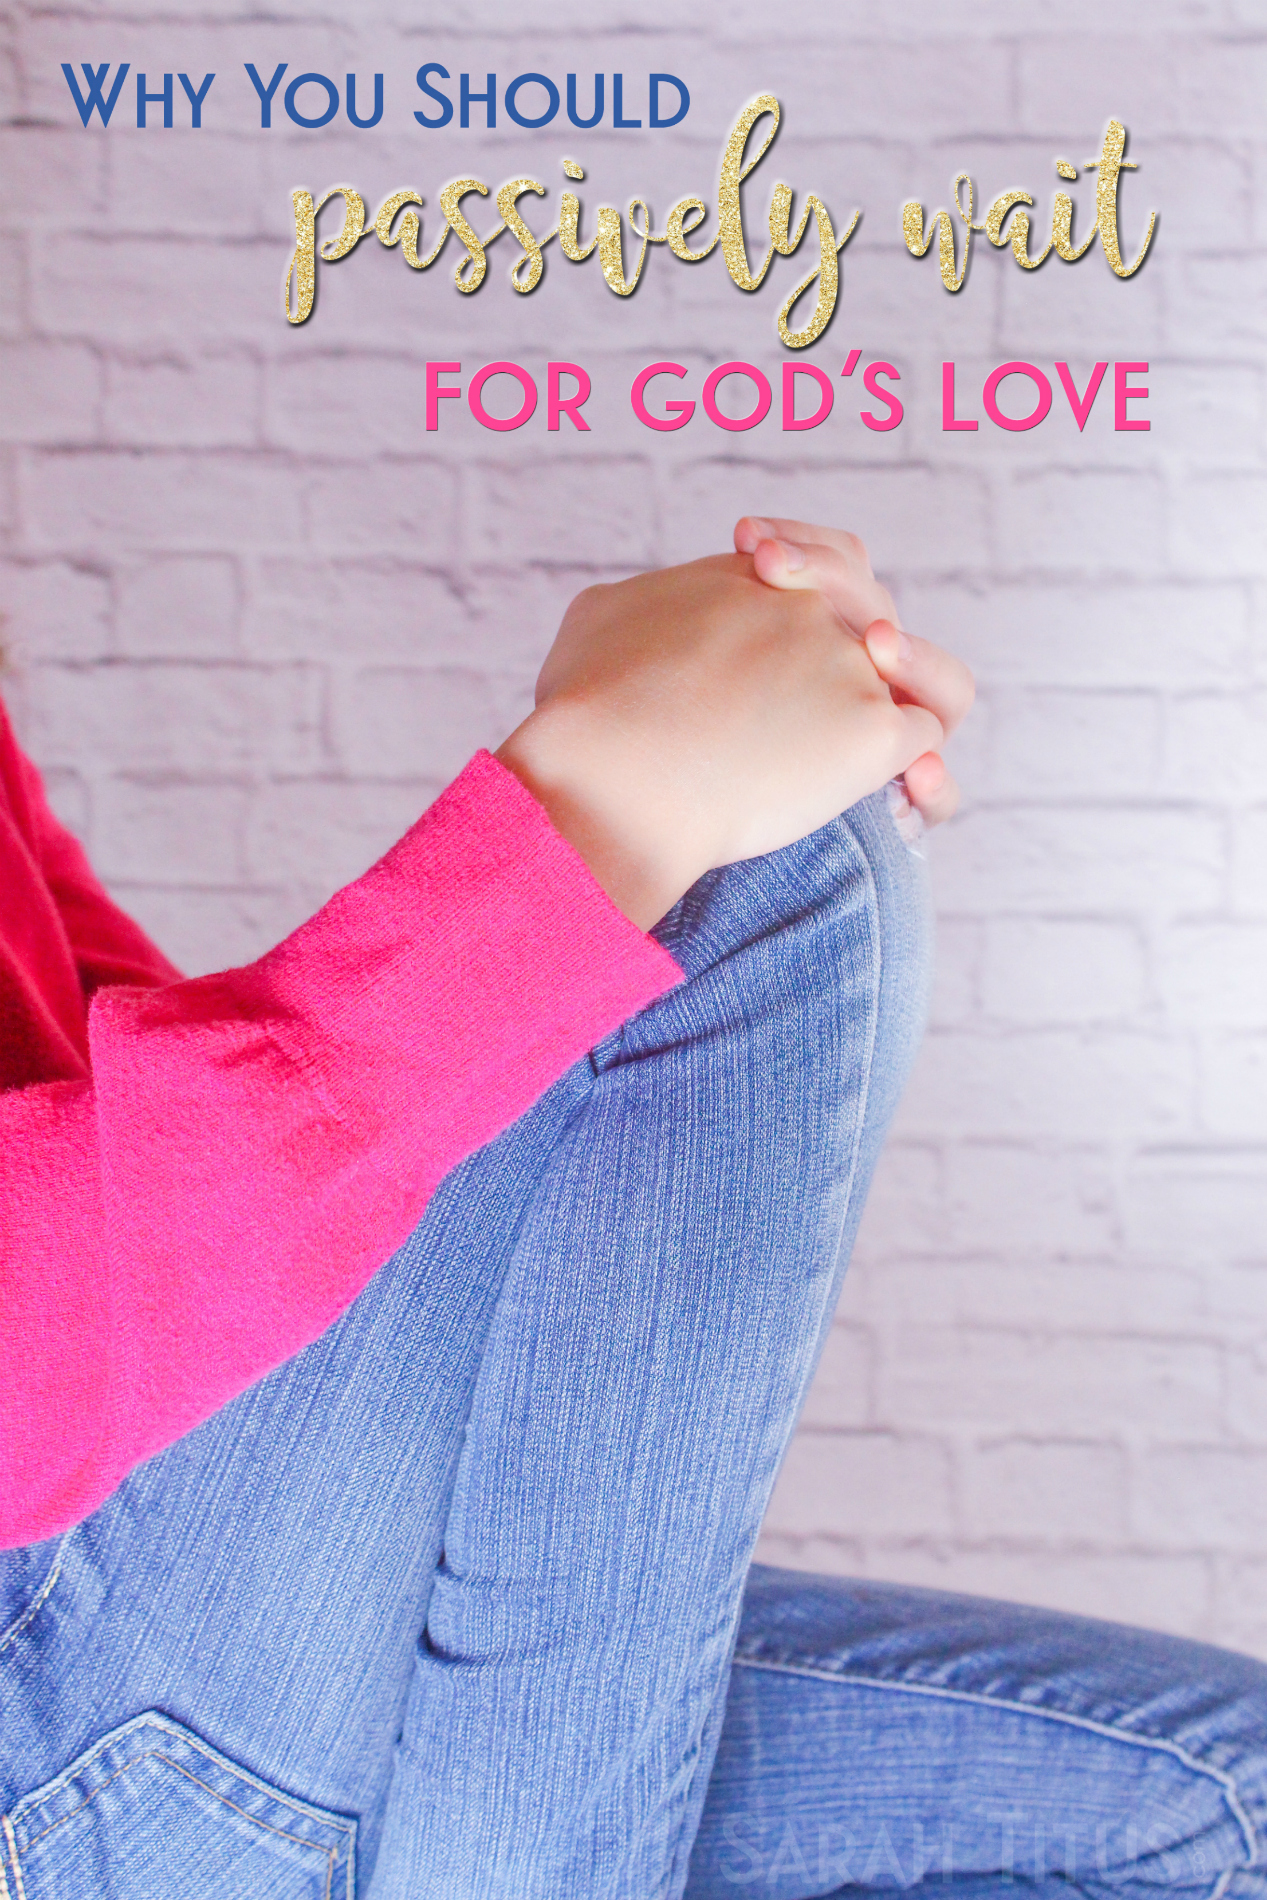 Why You Should Passively Wait for God's Love